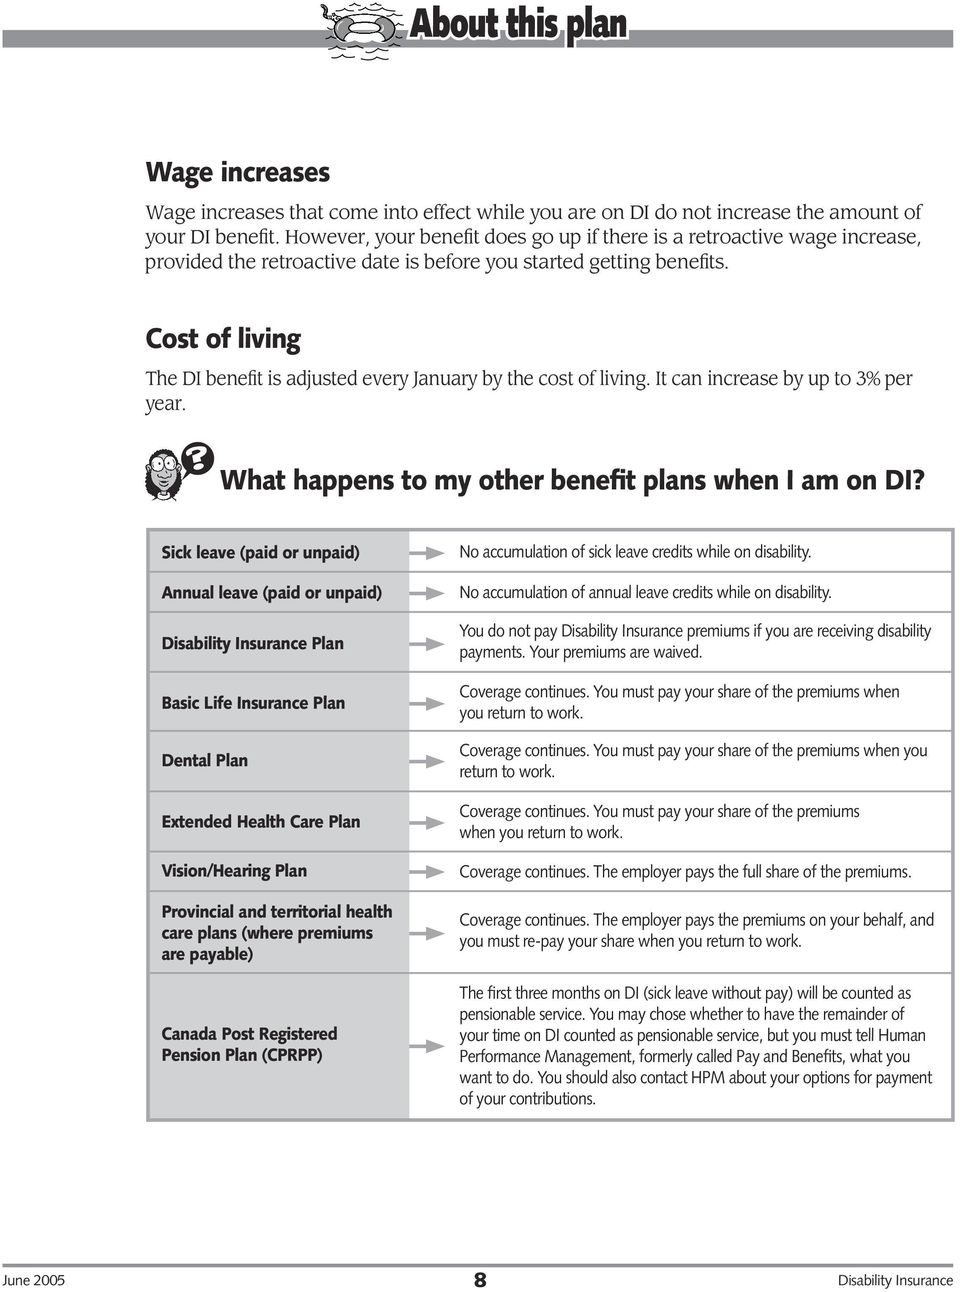 Cost of living The DI benefit is adjusted every January by the cost of living. It can increase by up to 3% per year. What happens to my other benefit plans when I am on DI?